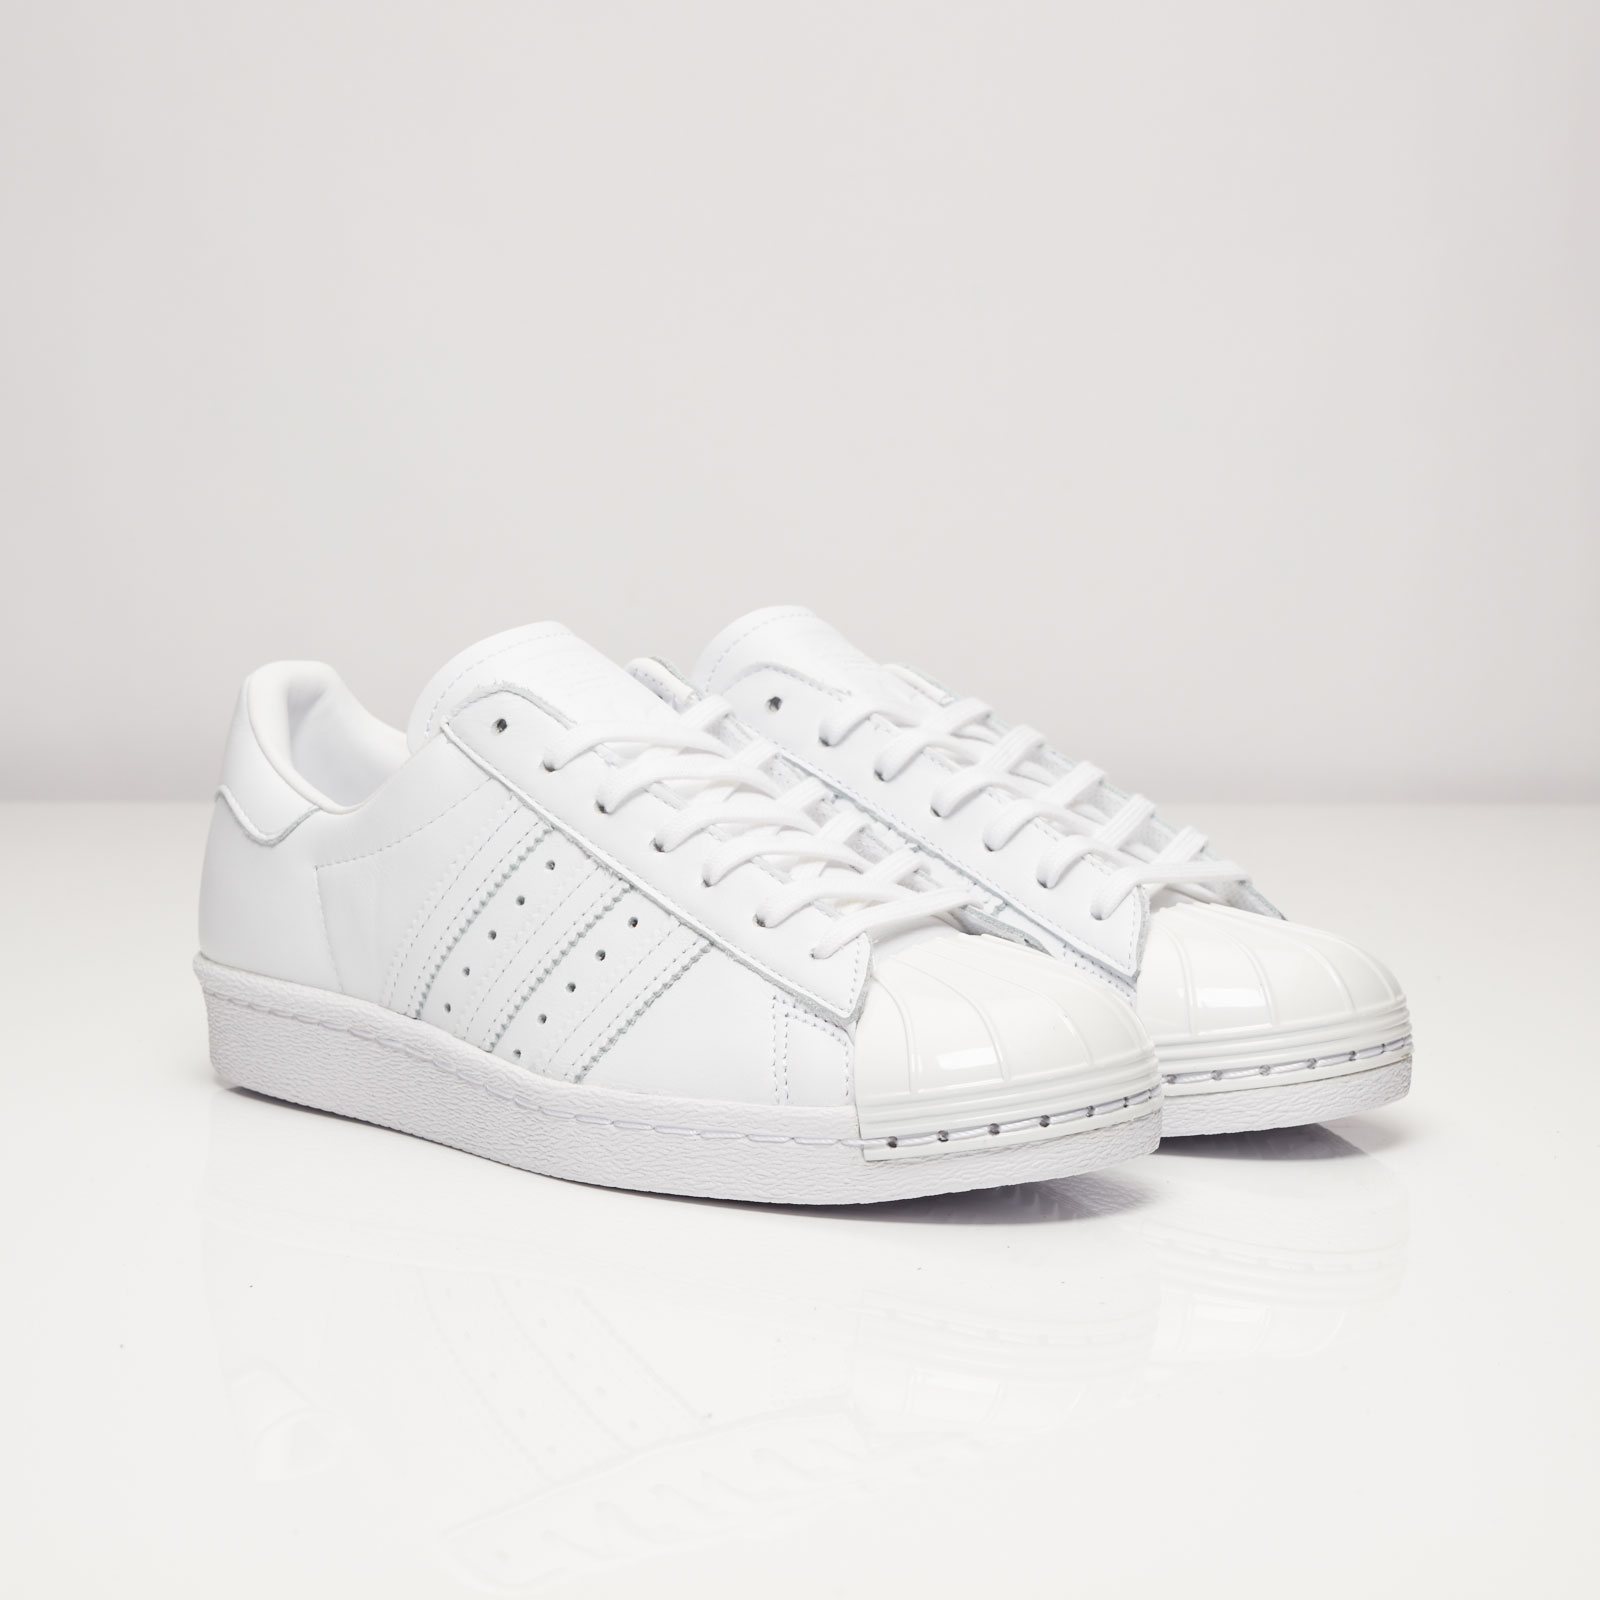 new concept b3a95 8a975 adidas Superstar 80s Metal Toe W - S76540 - Sneakersnstuff ...